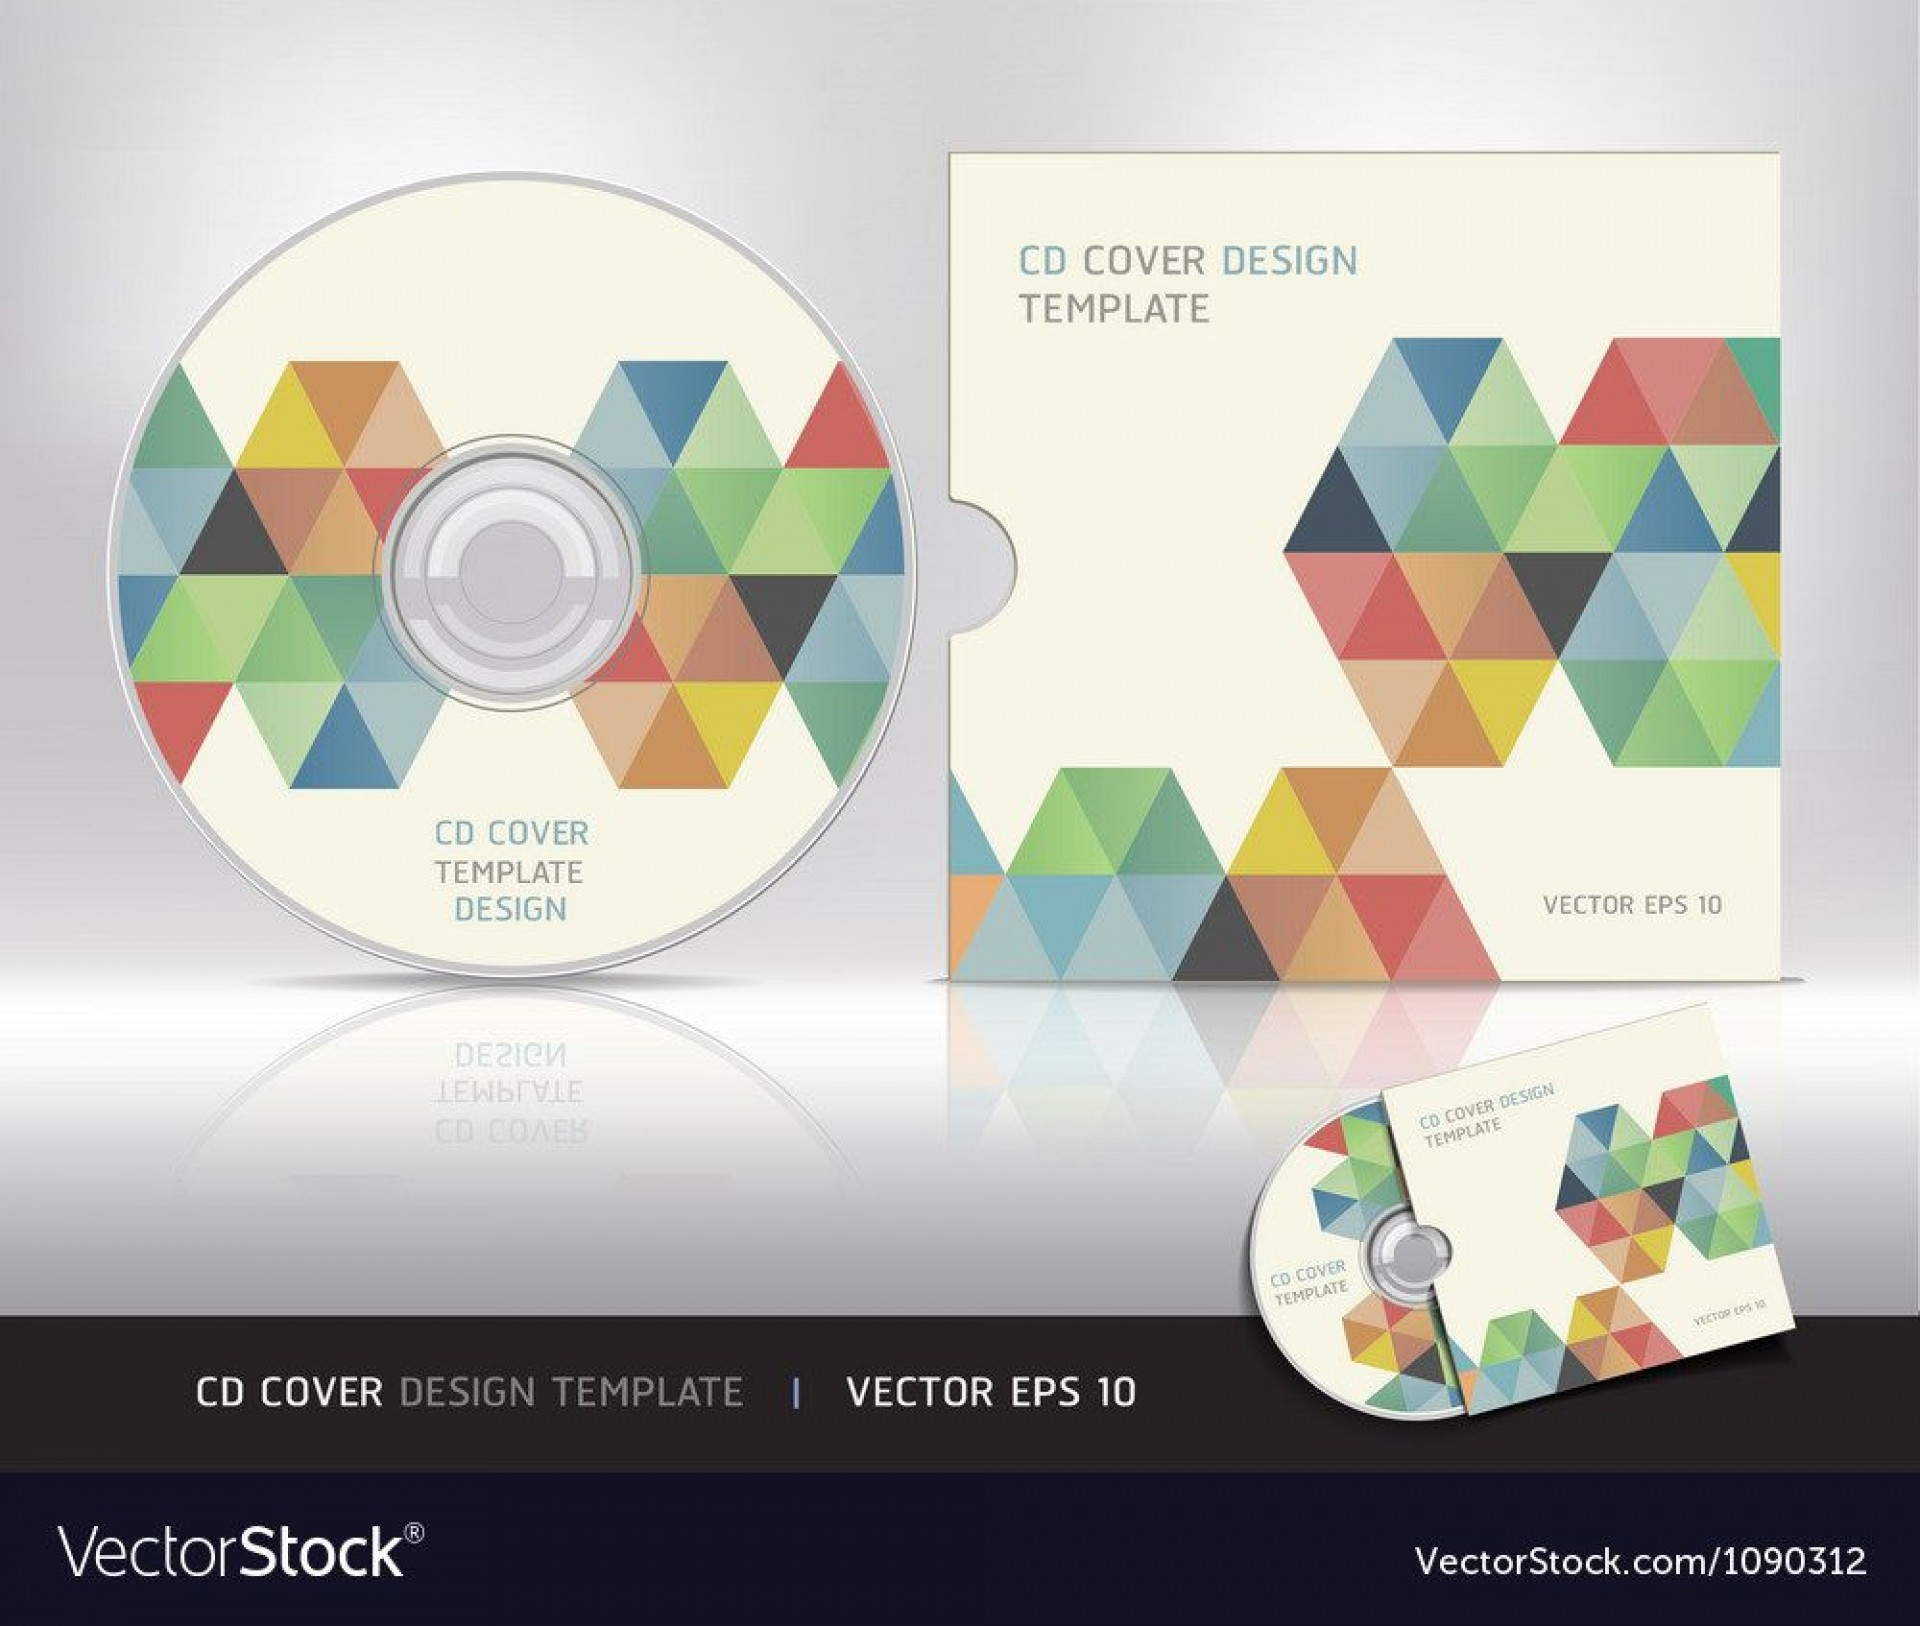 006 Fearsome Cd Cover Design Template  Free Vector Illustration Word Psd Download1920